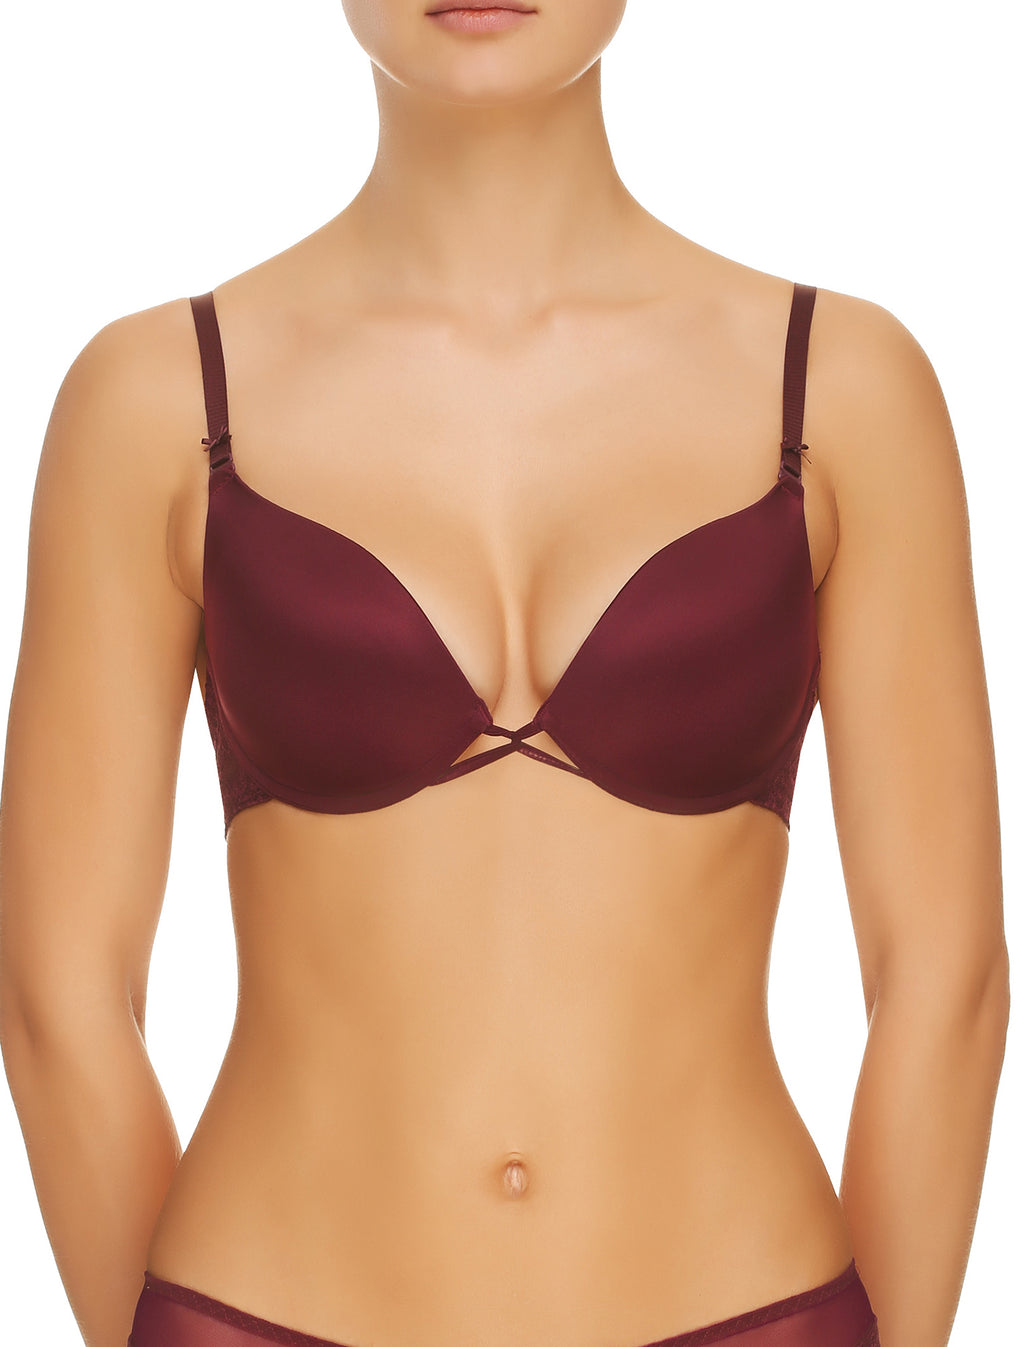 Nigh Queen Multiway T-Shirt Push-Up Bra